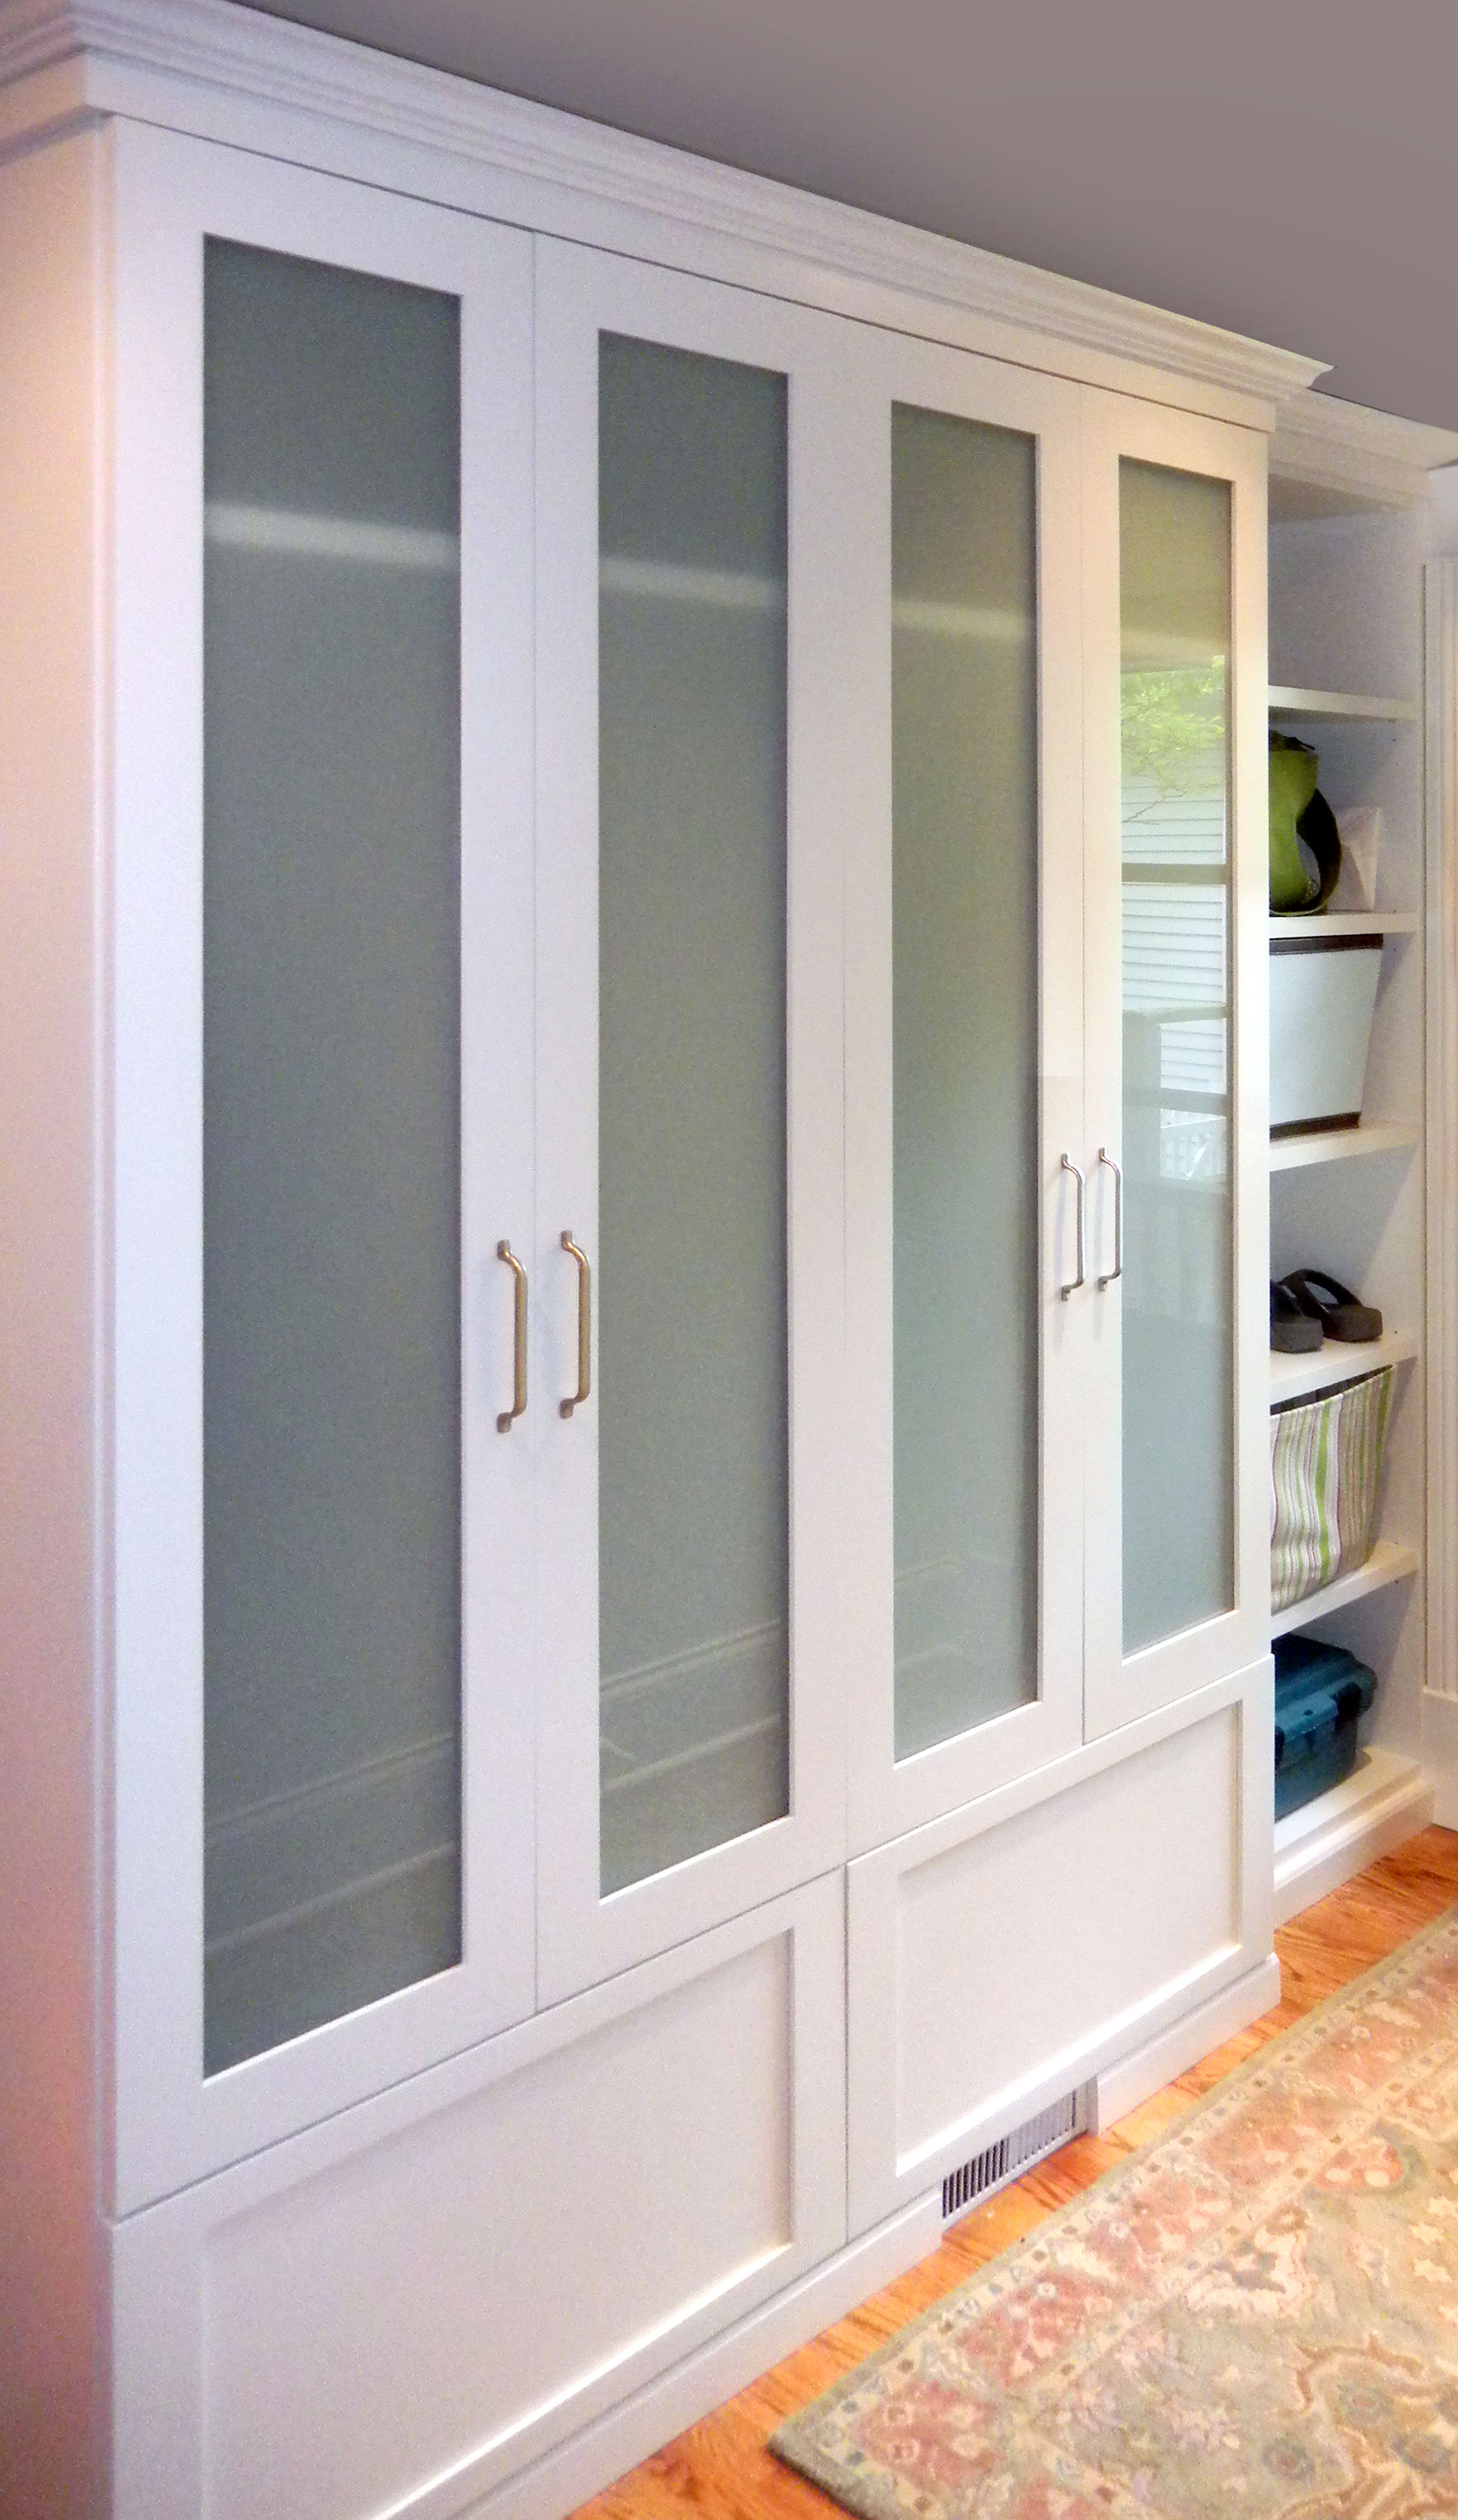 Mudroom for evanston homeowner closet outfitters - Closet door options for small spaces ideas ...